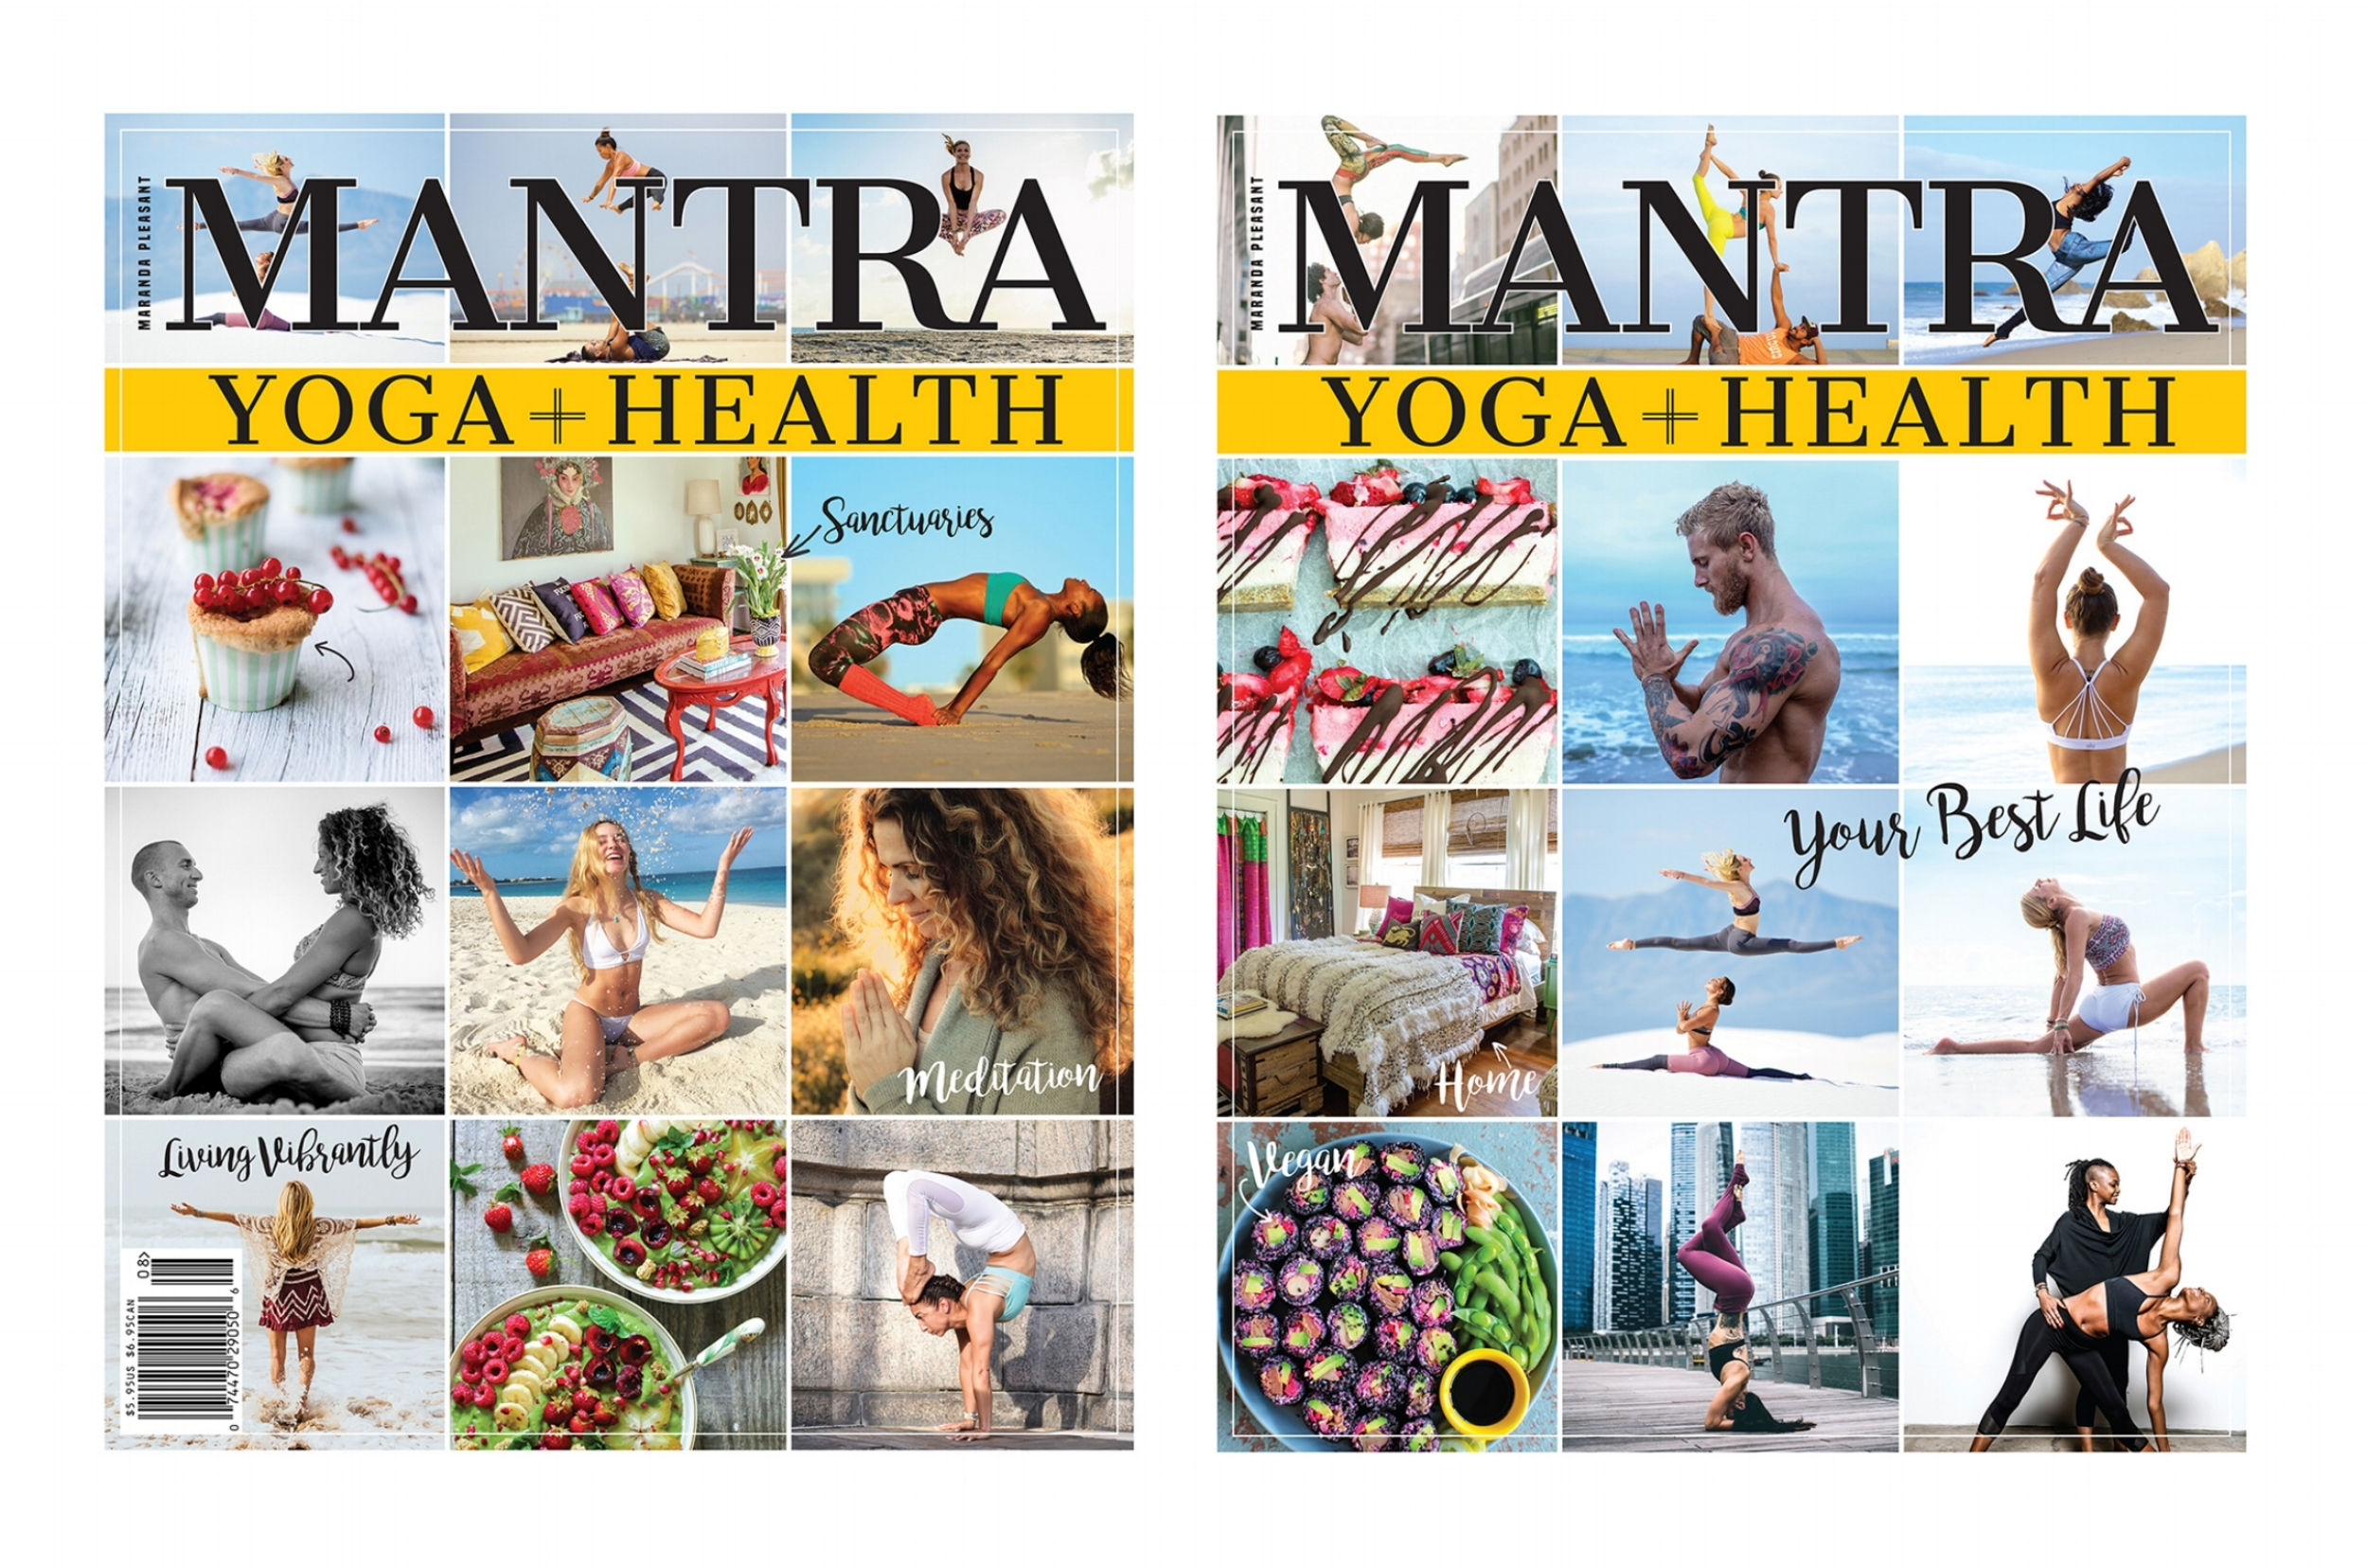 Mantra14_Covers.jpg